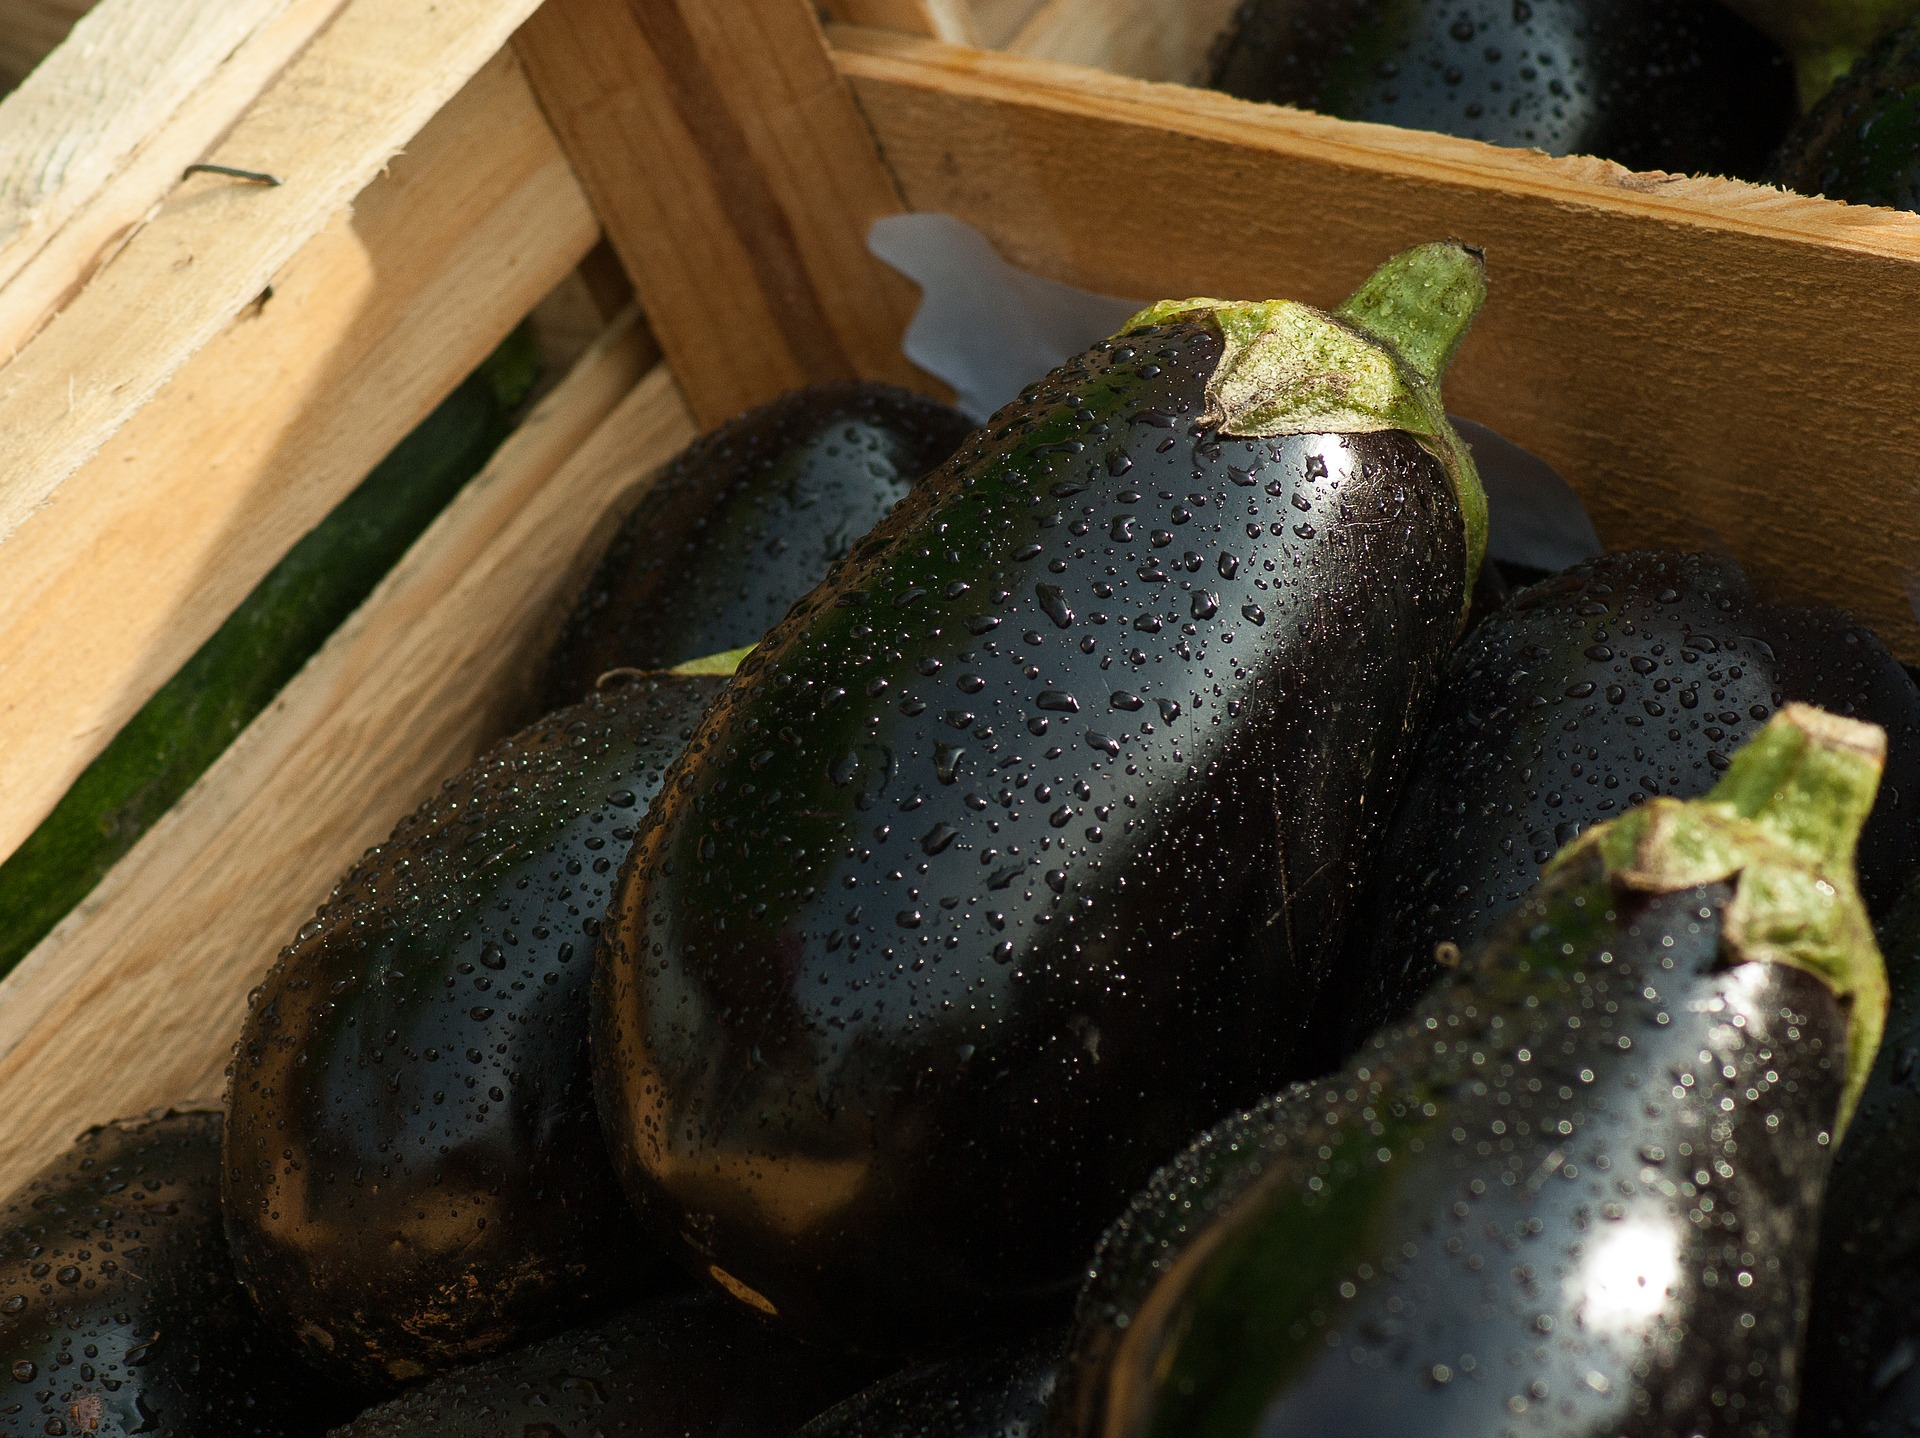 eggplants with water spots in a wooden crate